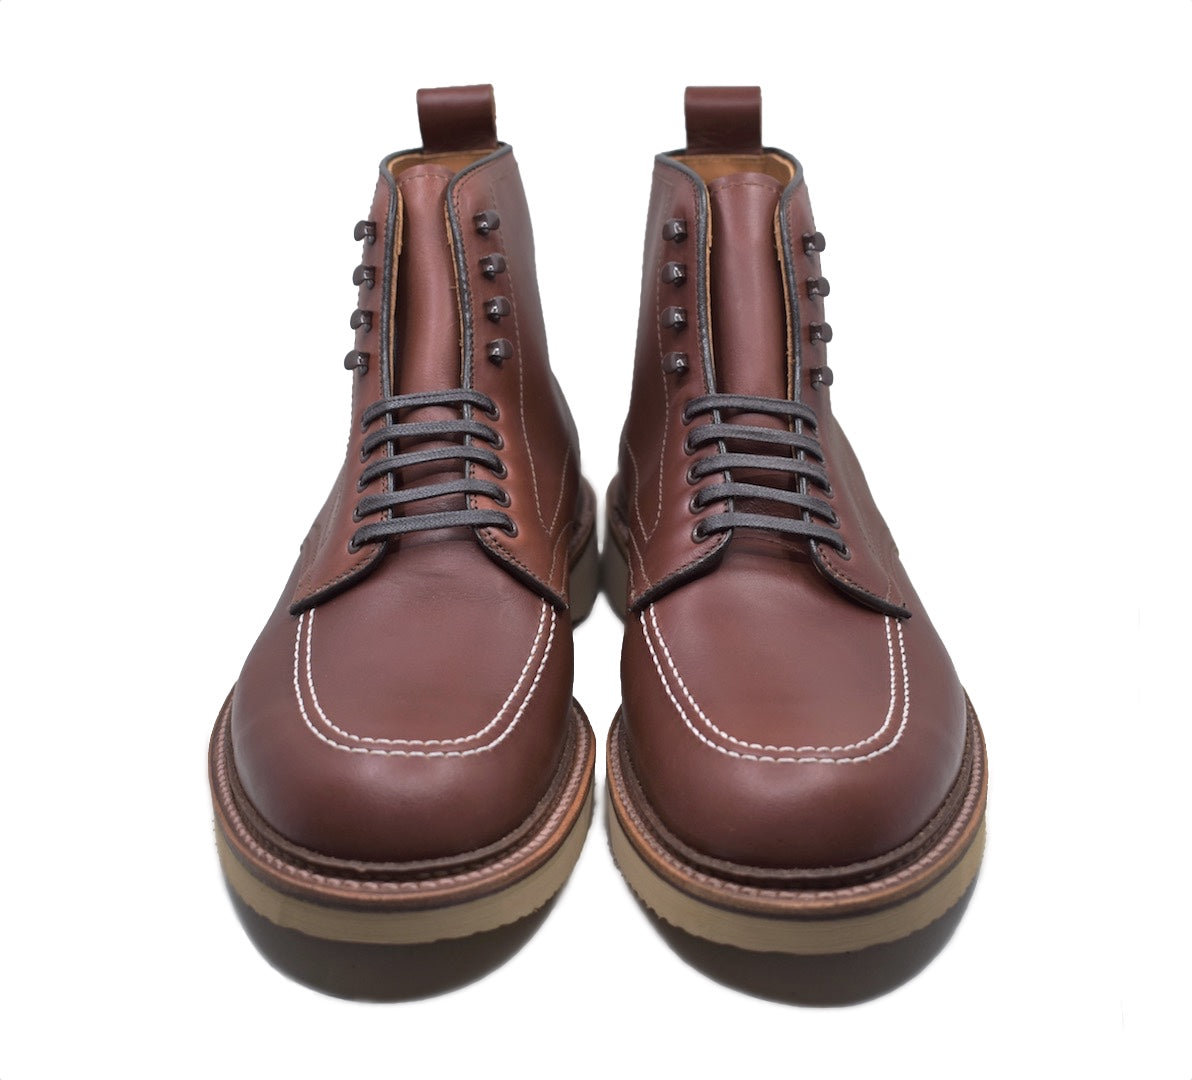 Alden Shoes Classic Indy 405 Boot on Wedge Work Sole